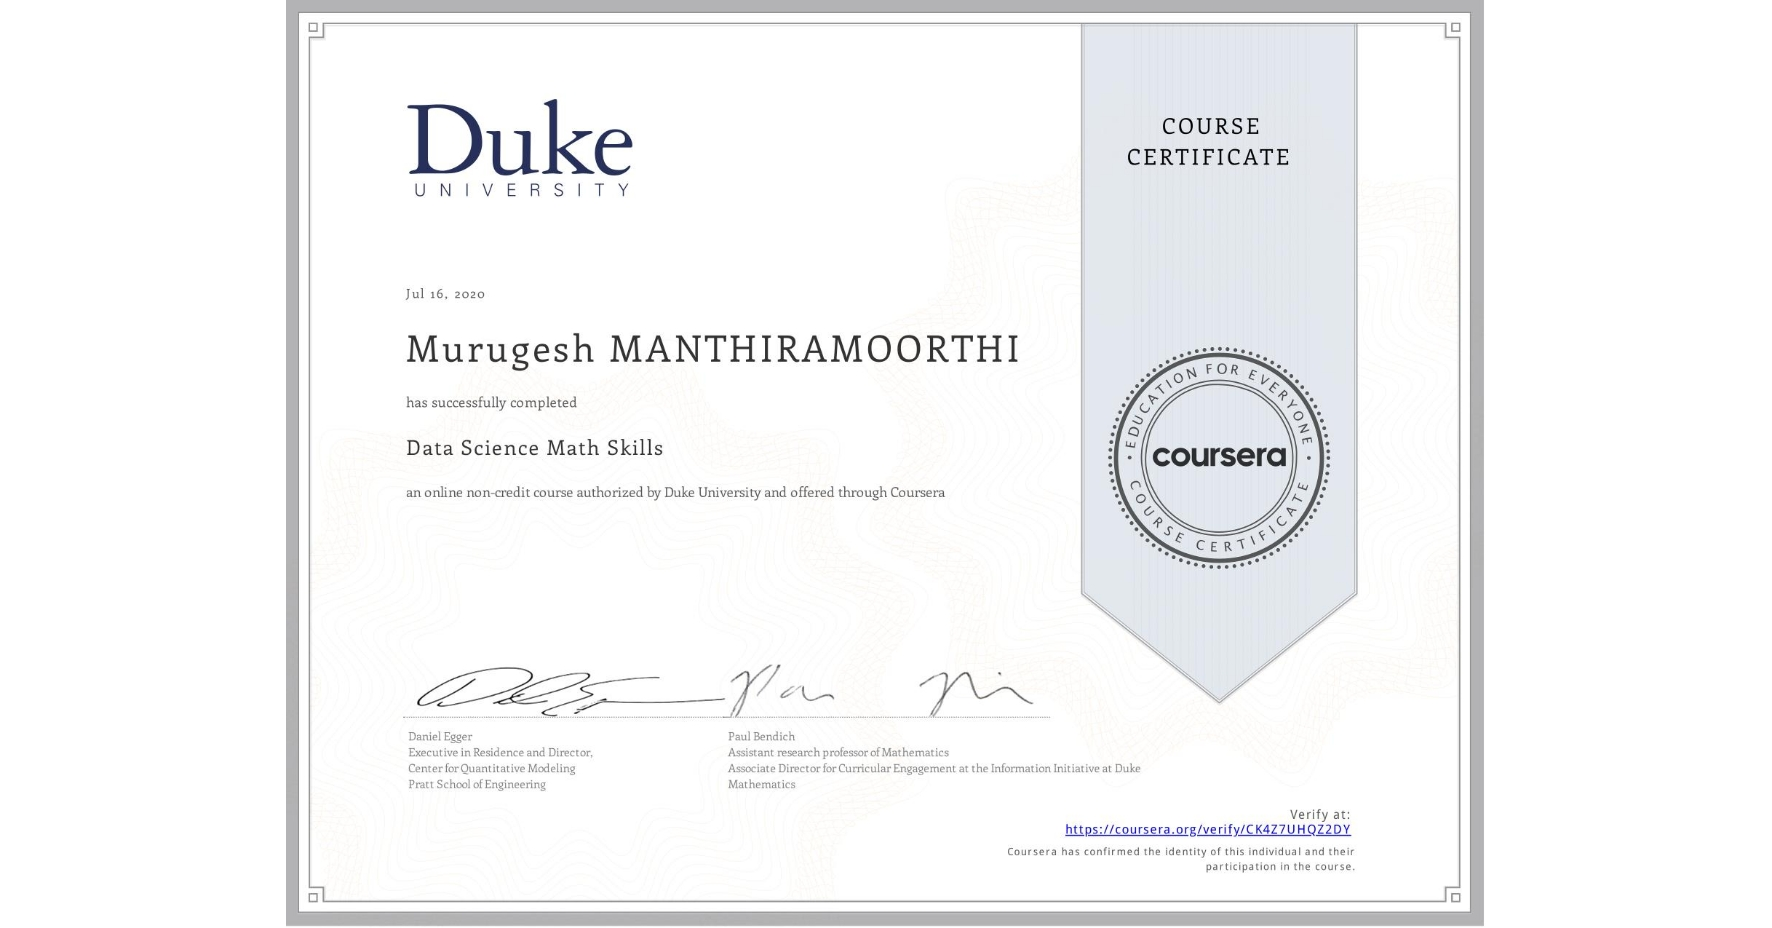 View certificate for Murugesh Manthiramoorthi, Data Science Math Skills, an online non-credit course authorized by Duke University and offered through Coursera